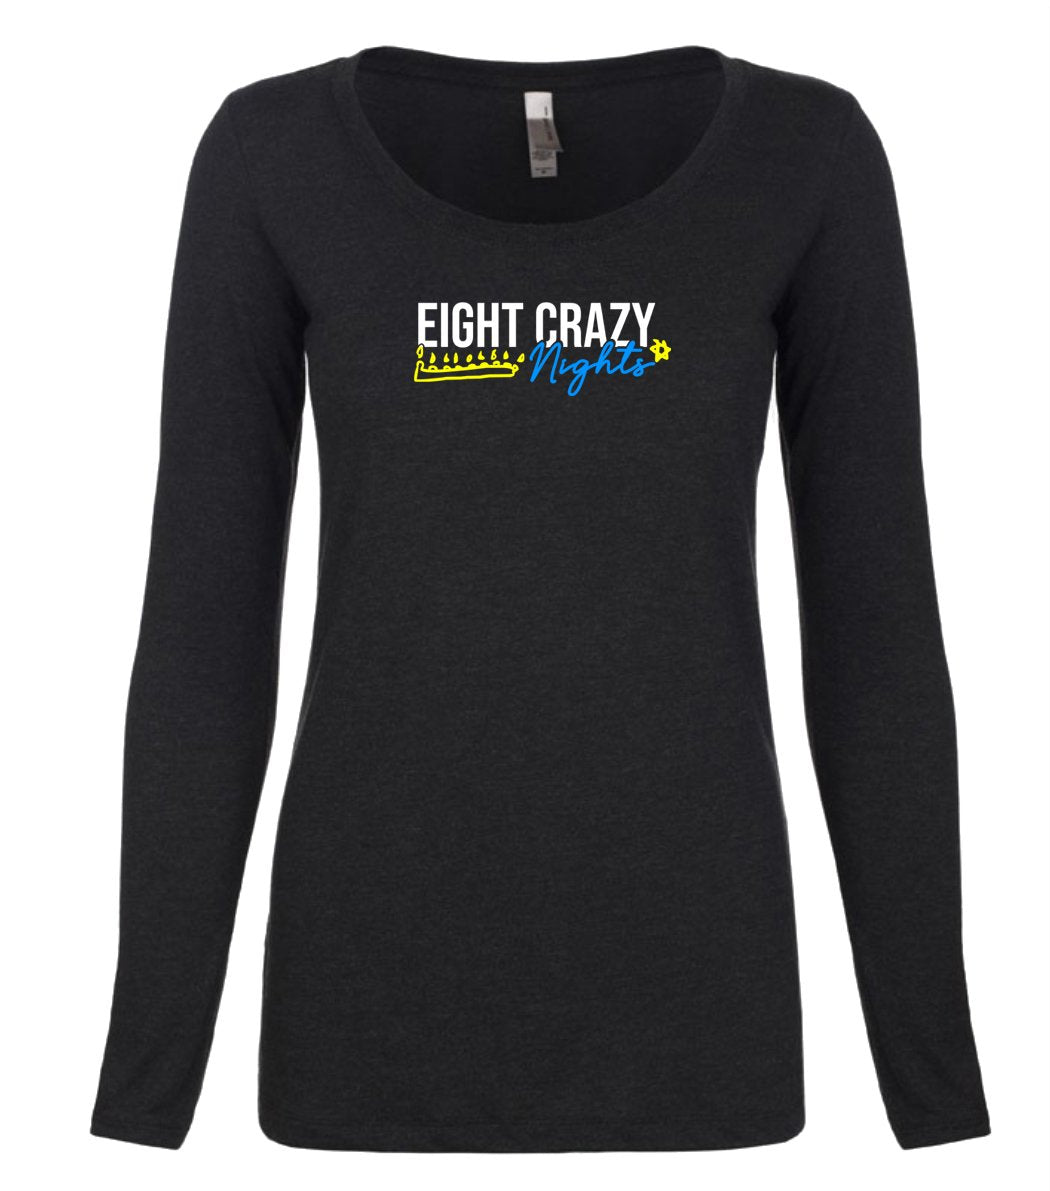 black 8 nights women's long sleeve Hanukkah t shirt